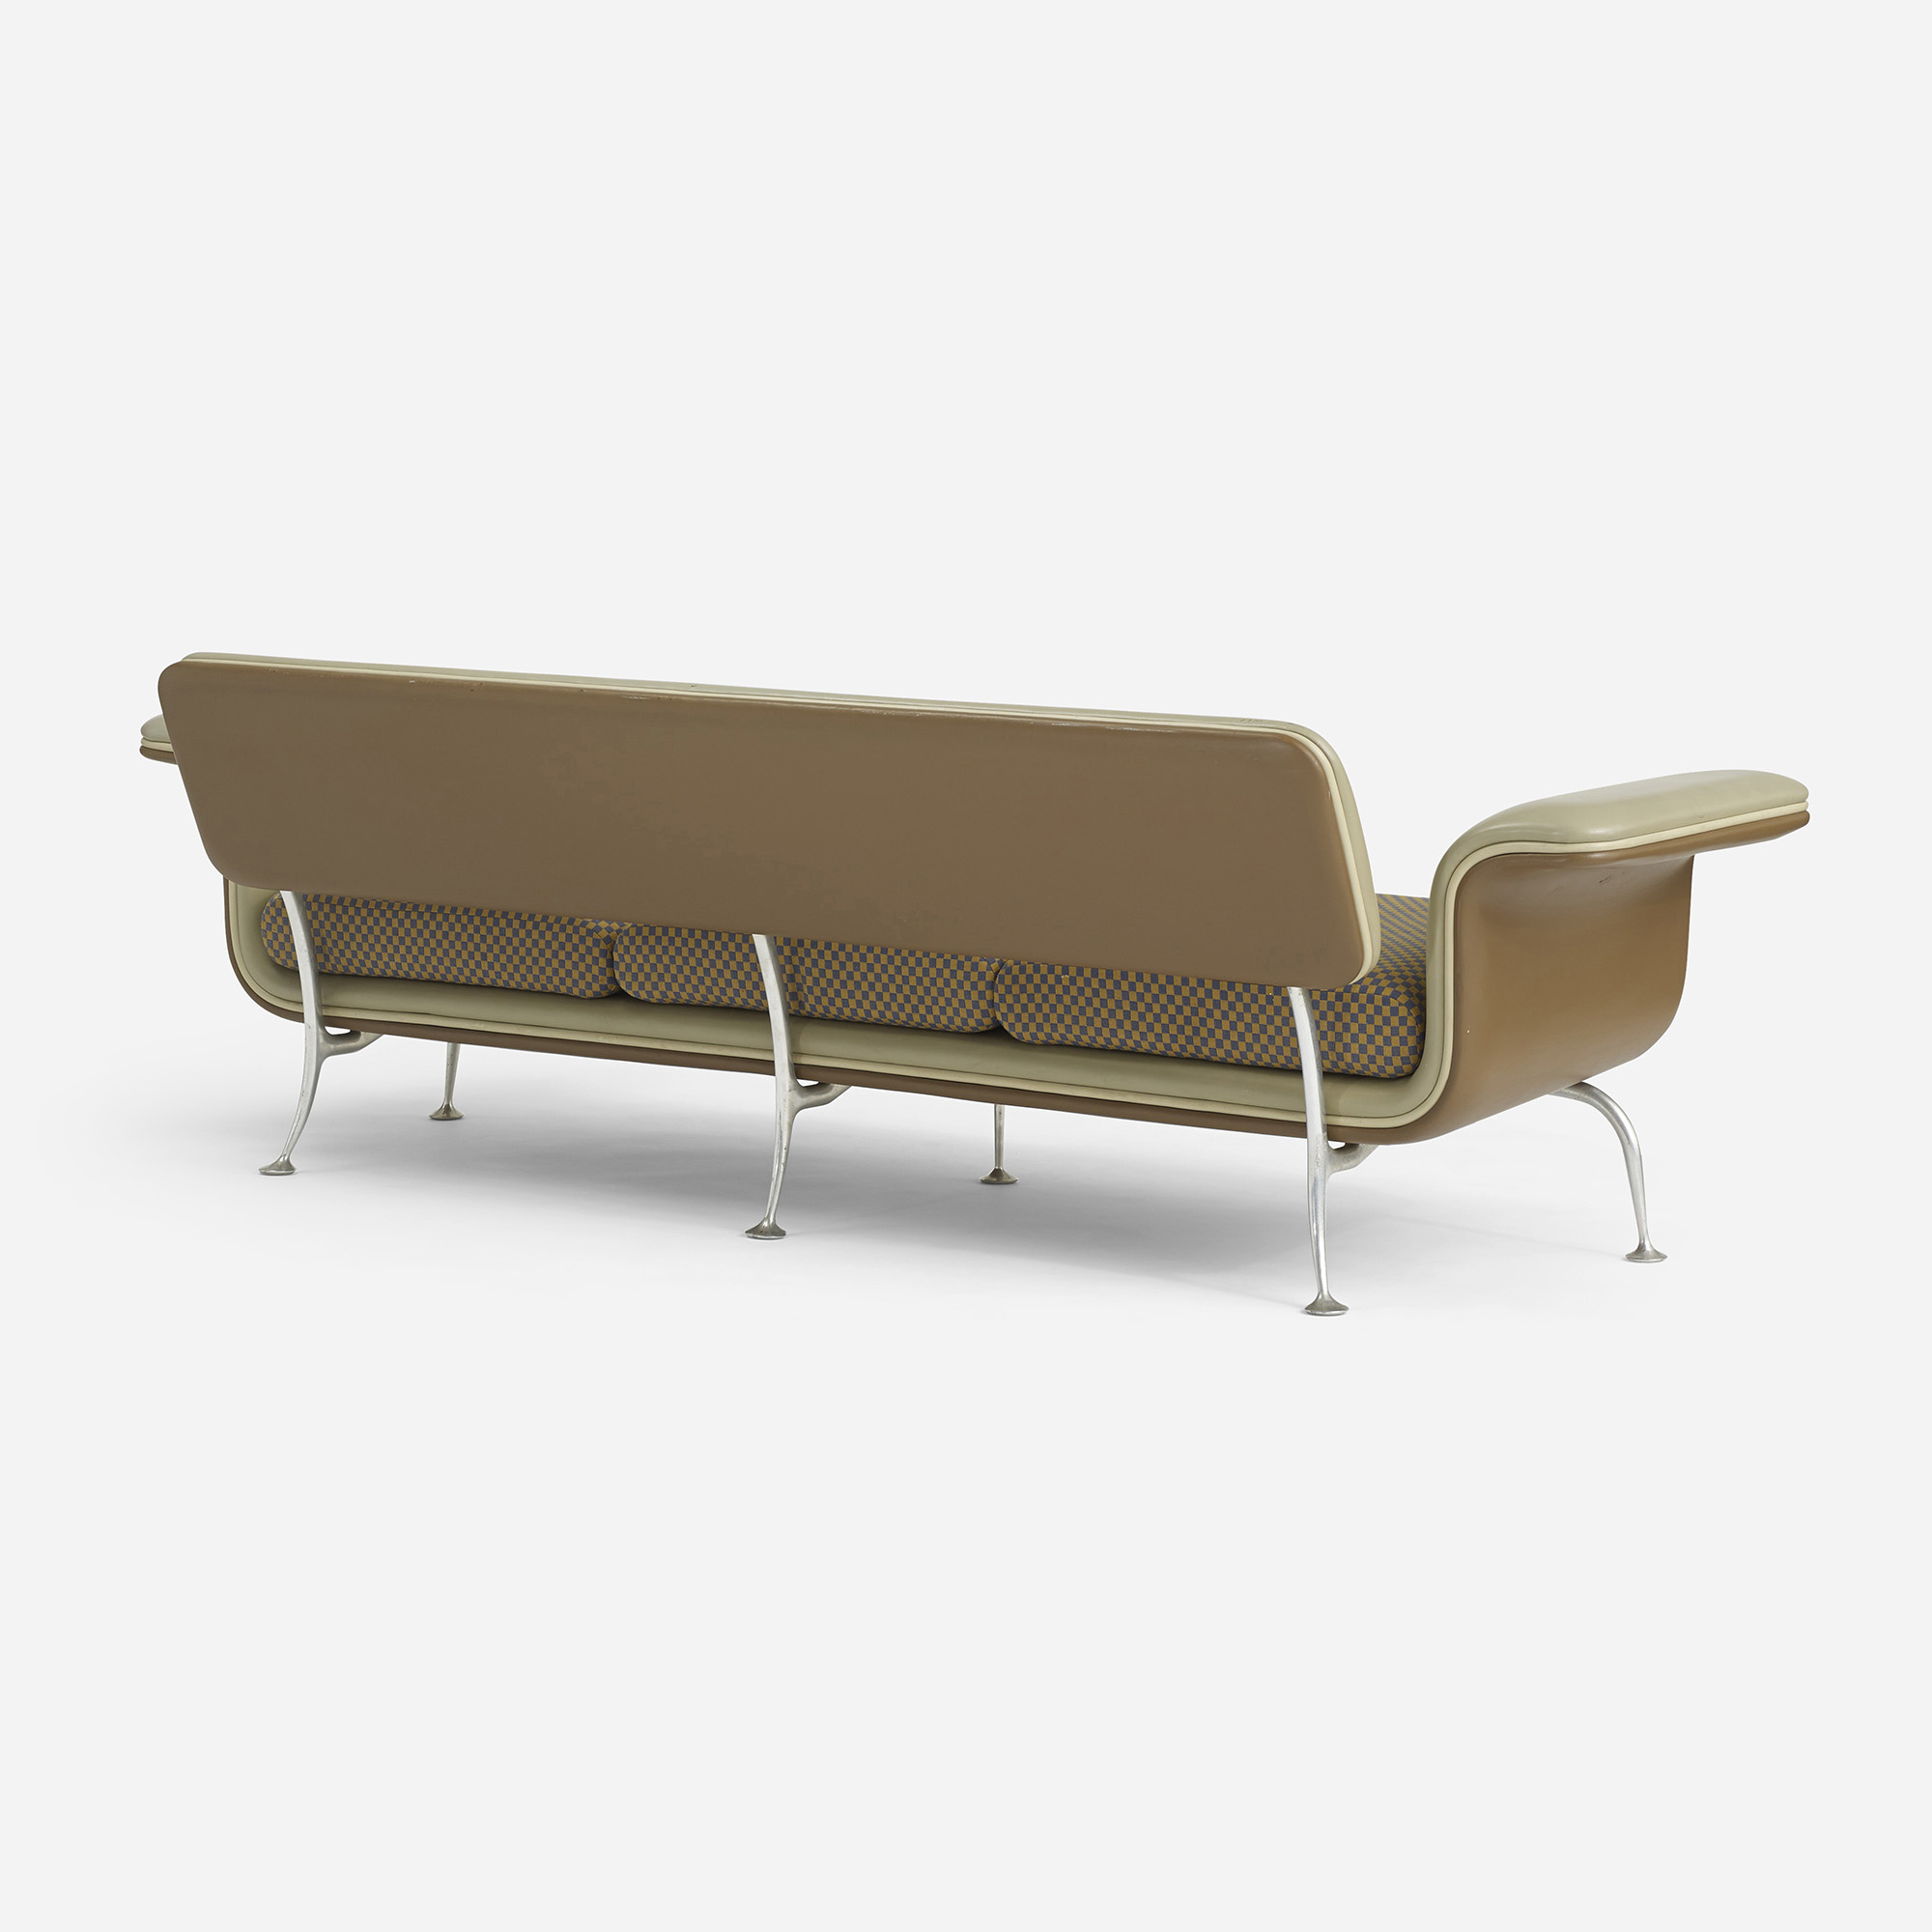 285 Alexander Girard sofa model Design 12 June 2014